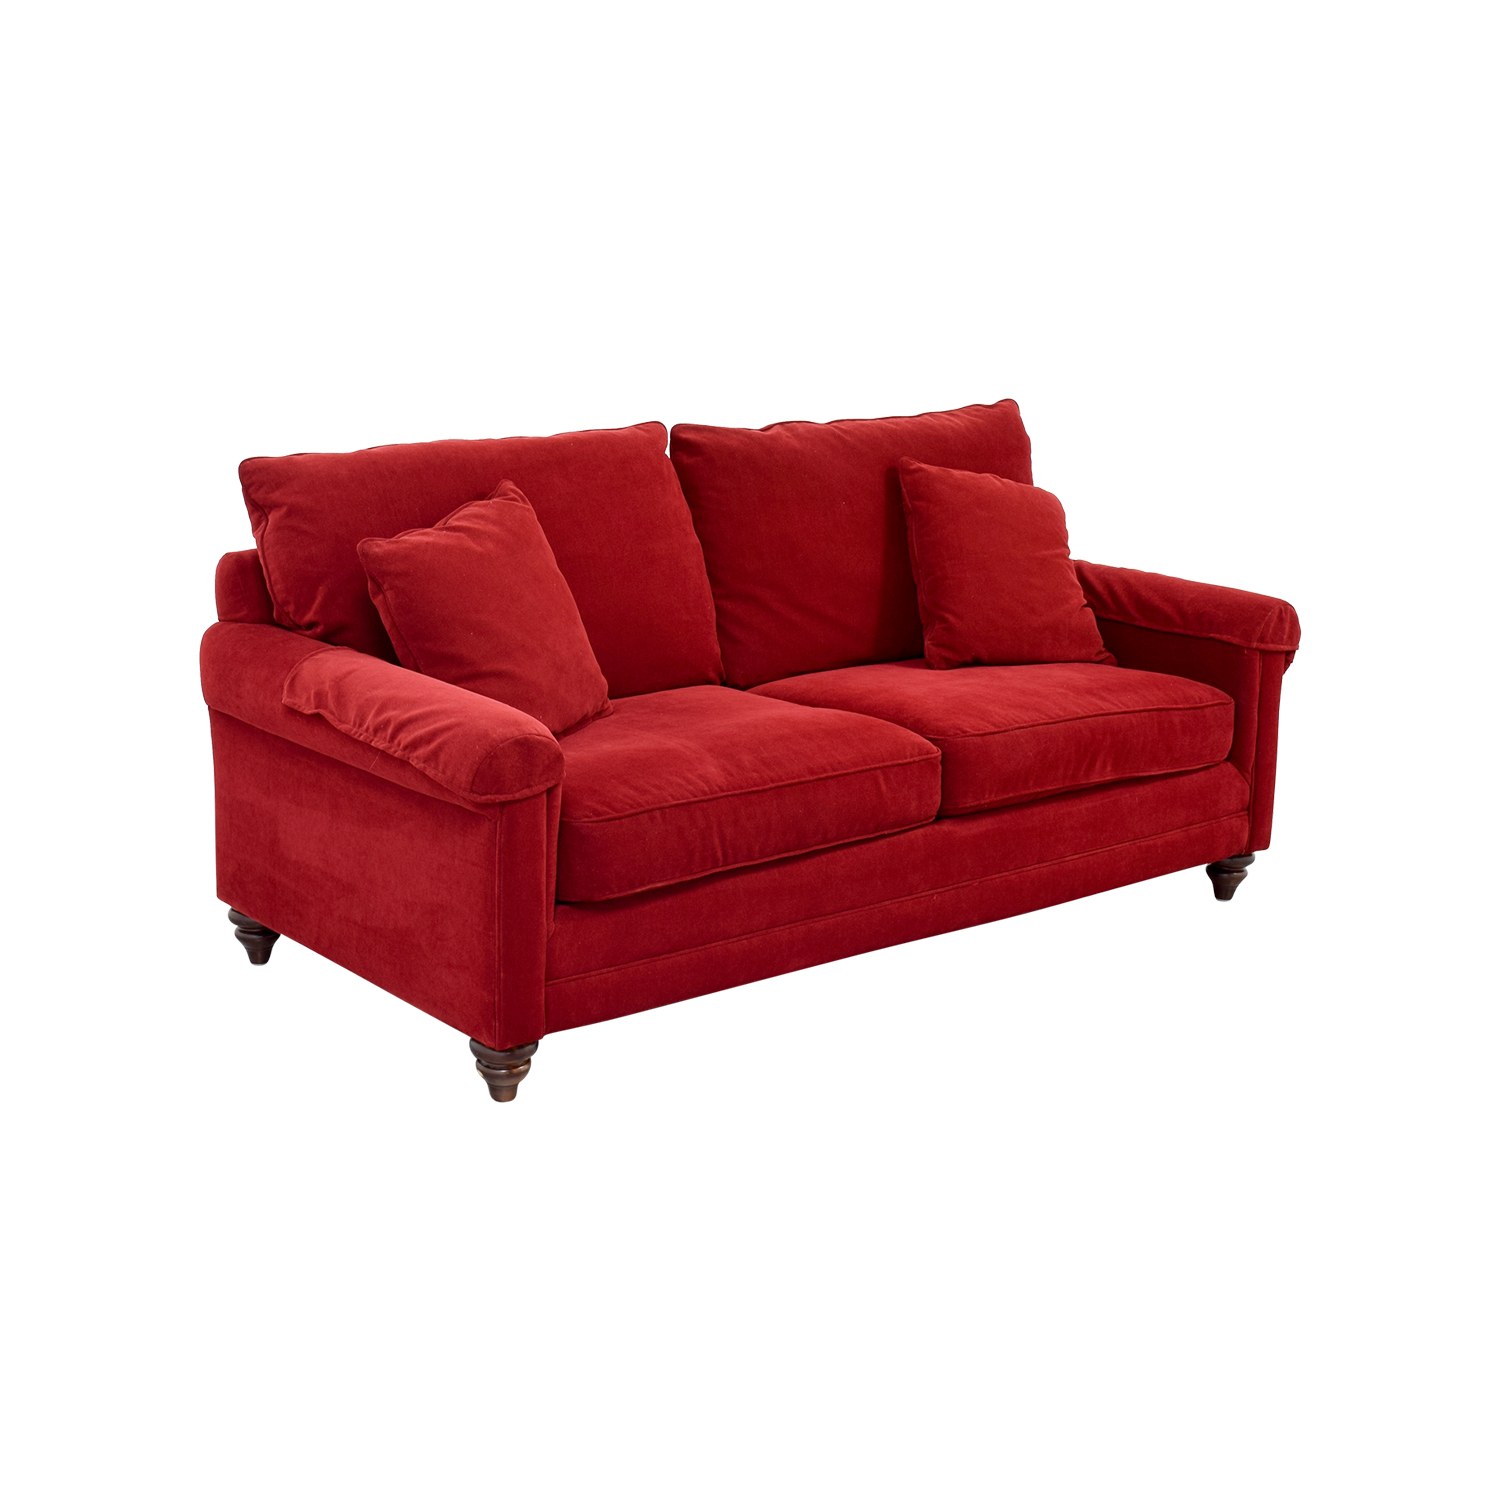 red curved sofa style sectional sofa curved tos lf 4522 red velour thesofa. Black Bedroom Furniture Sets. Home Design Ideas